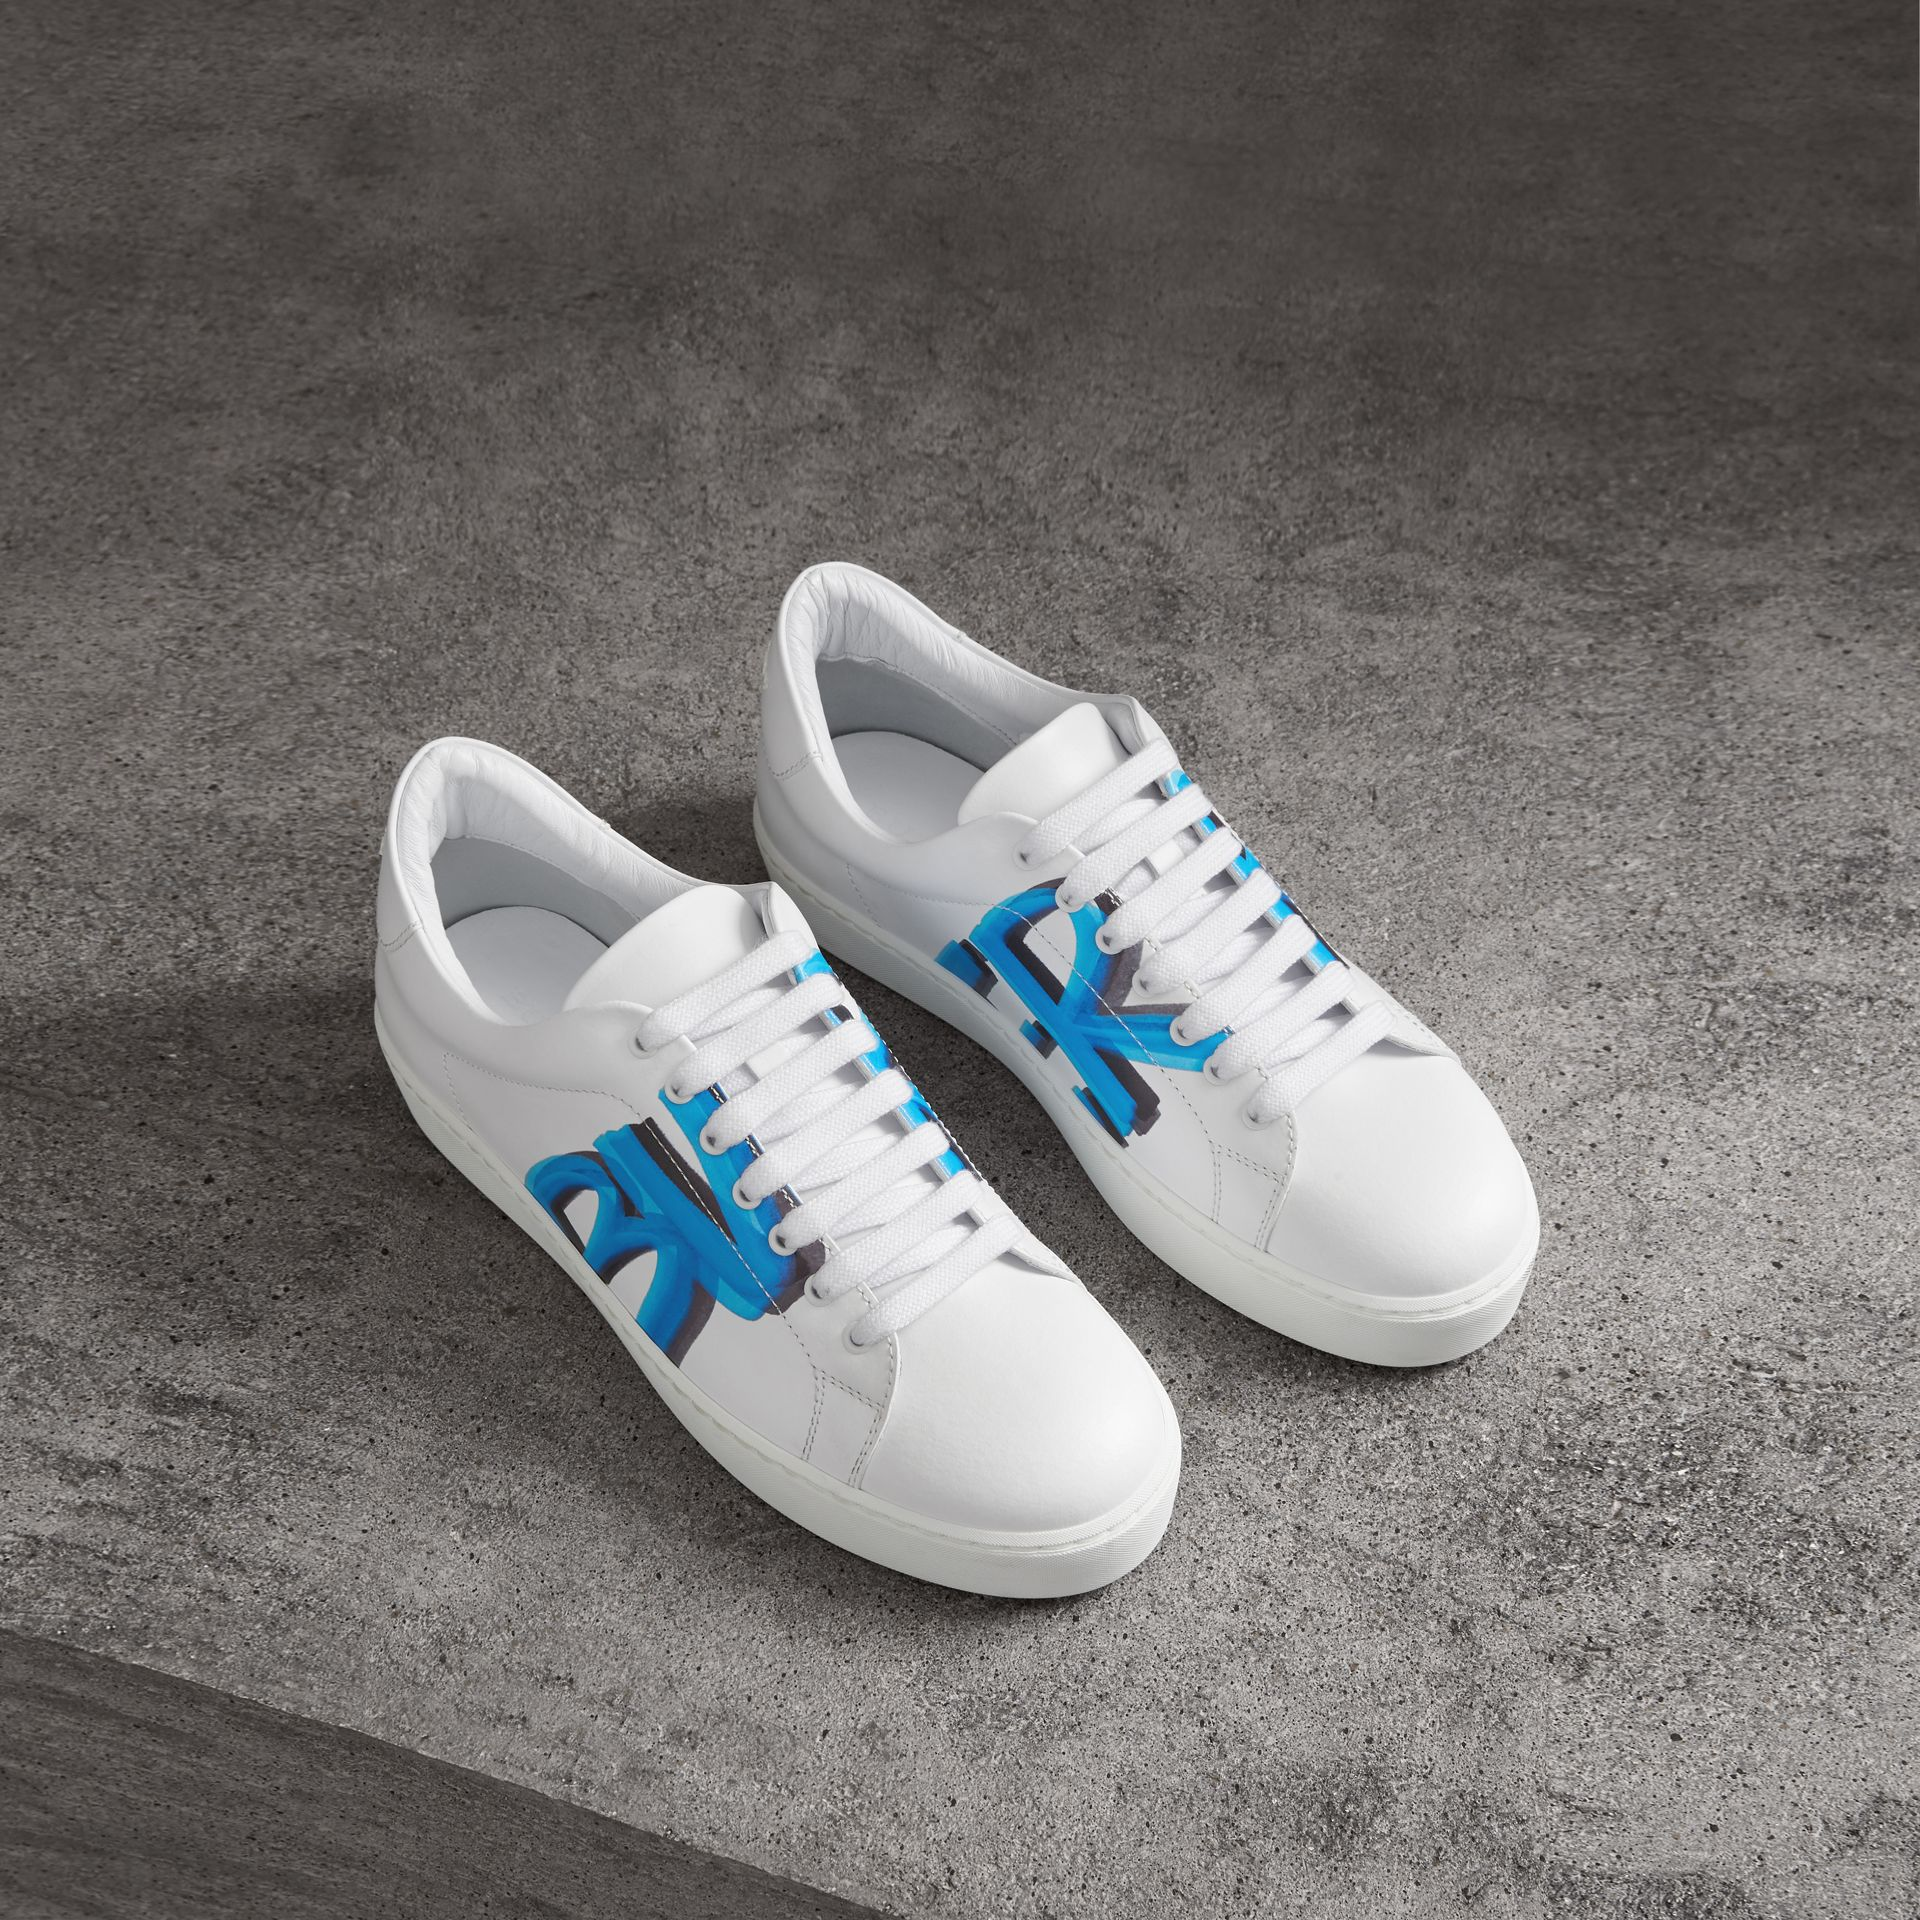 Graffiti Print Leather Sneakers in Bright Sky Blue - Women | Burberry - gallery image 0